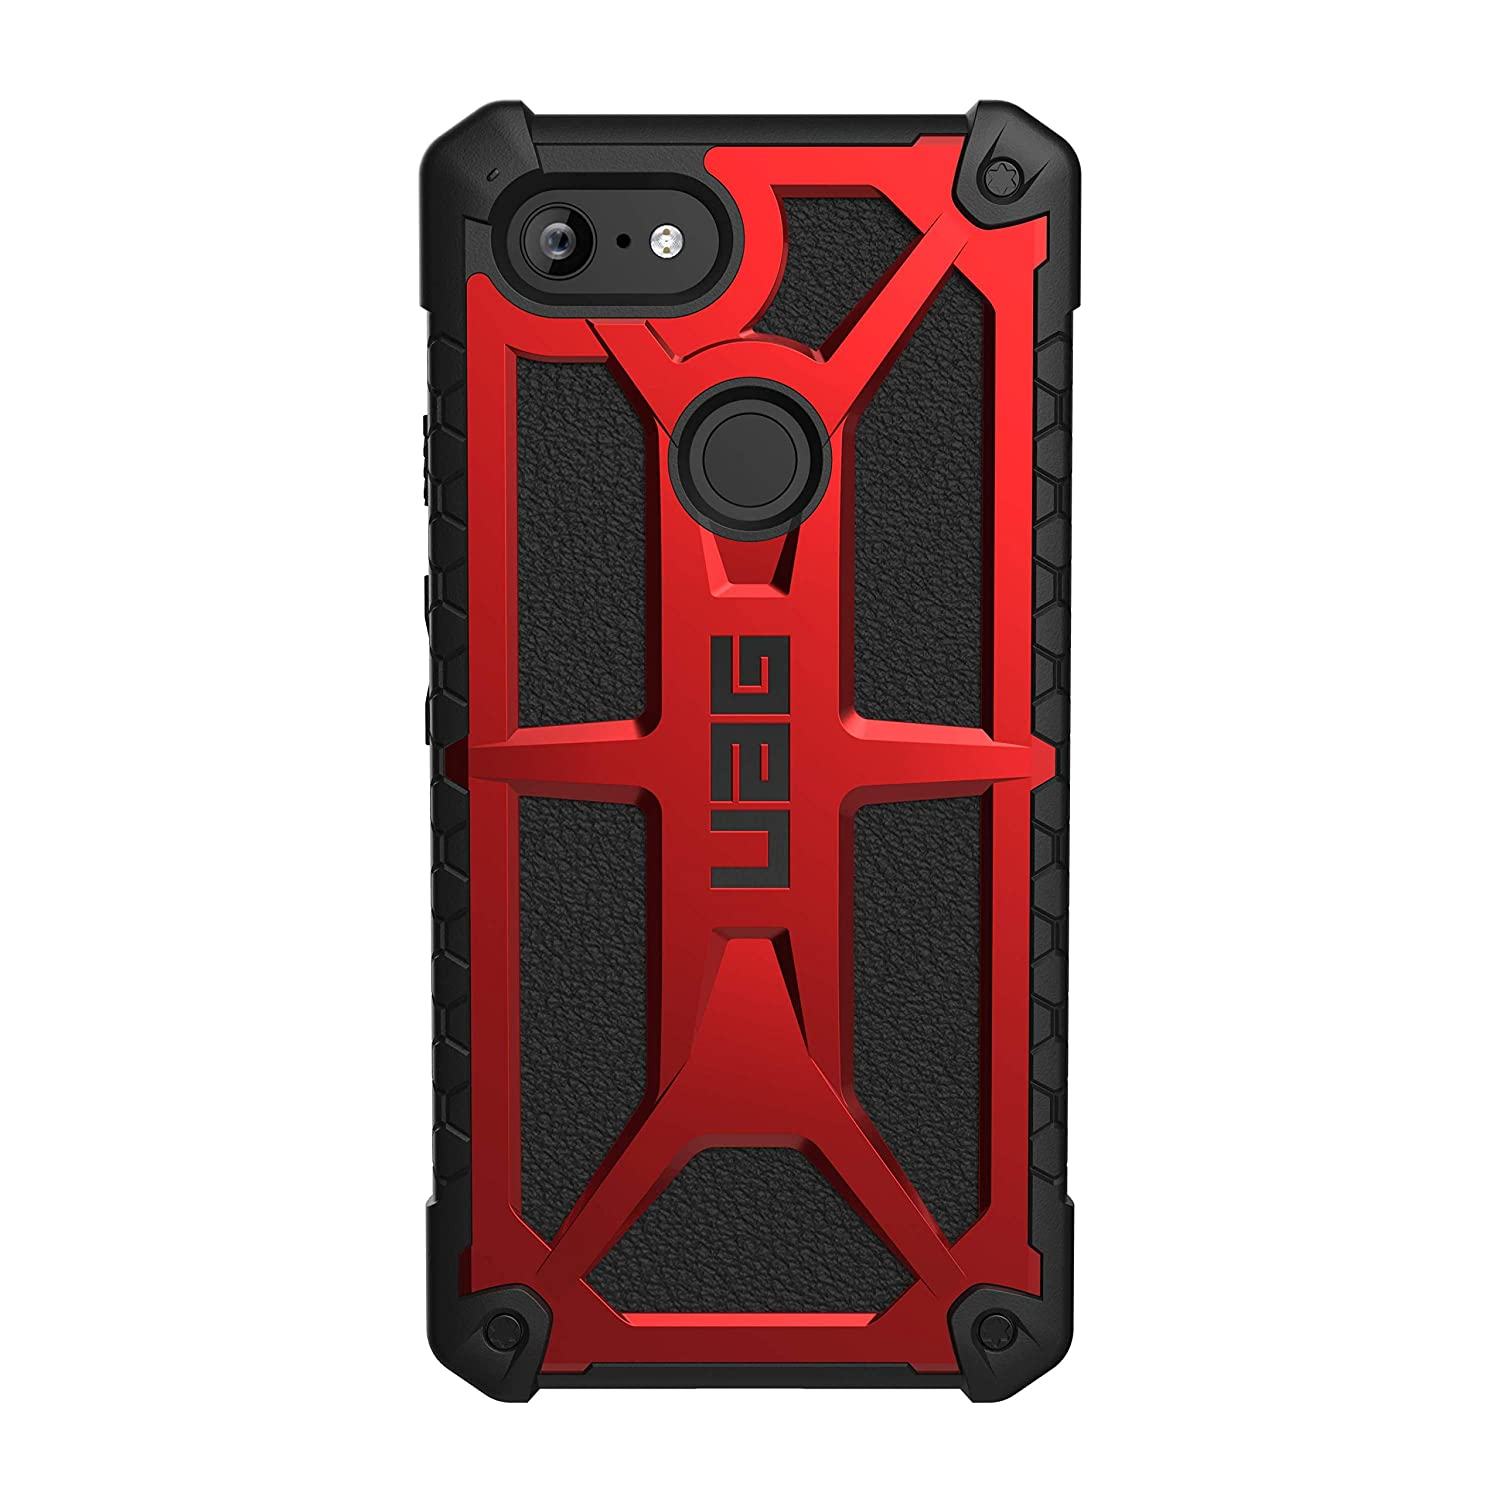 info for 9ee71 337e2 URBAN ARMOR GEAR UAG Google Pixel 3 XL [6.3-inch Screen] Monarch  Feather-Light Rugged [Crimson] Military Drop Tested Case